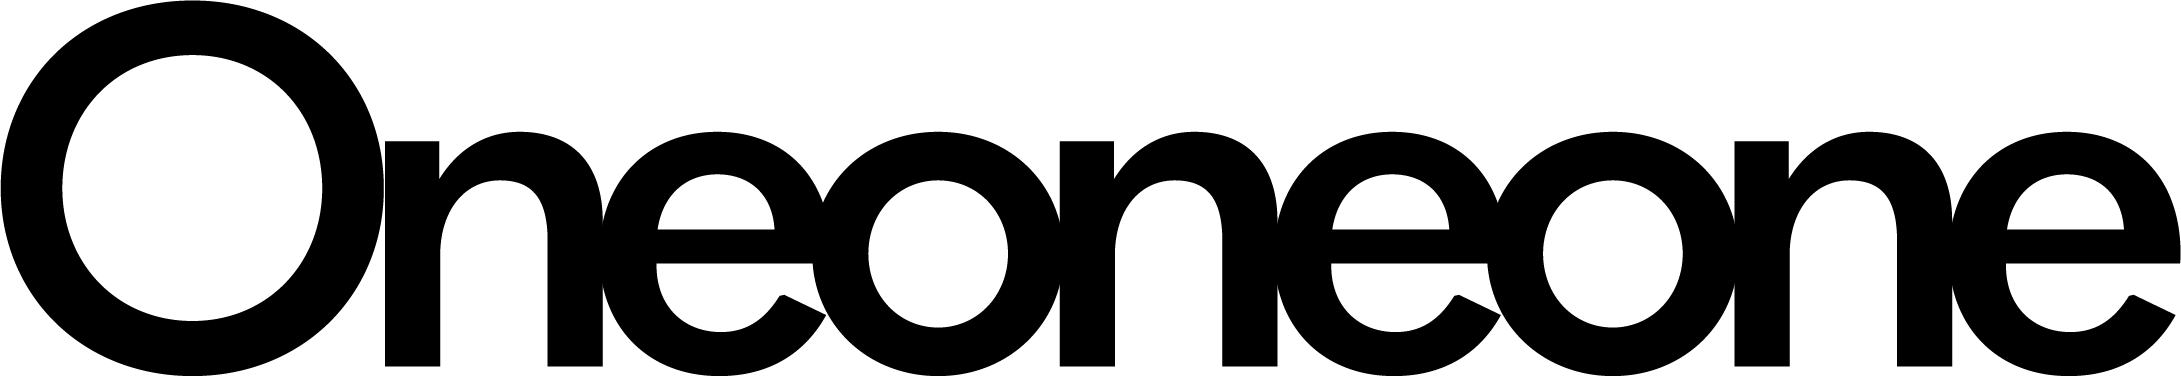 Oneoneone_Logo_final.png